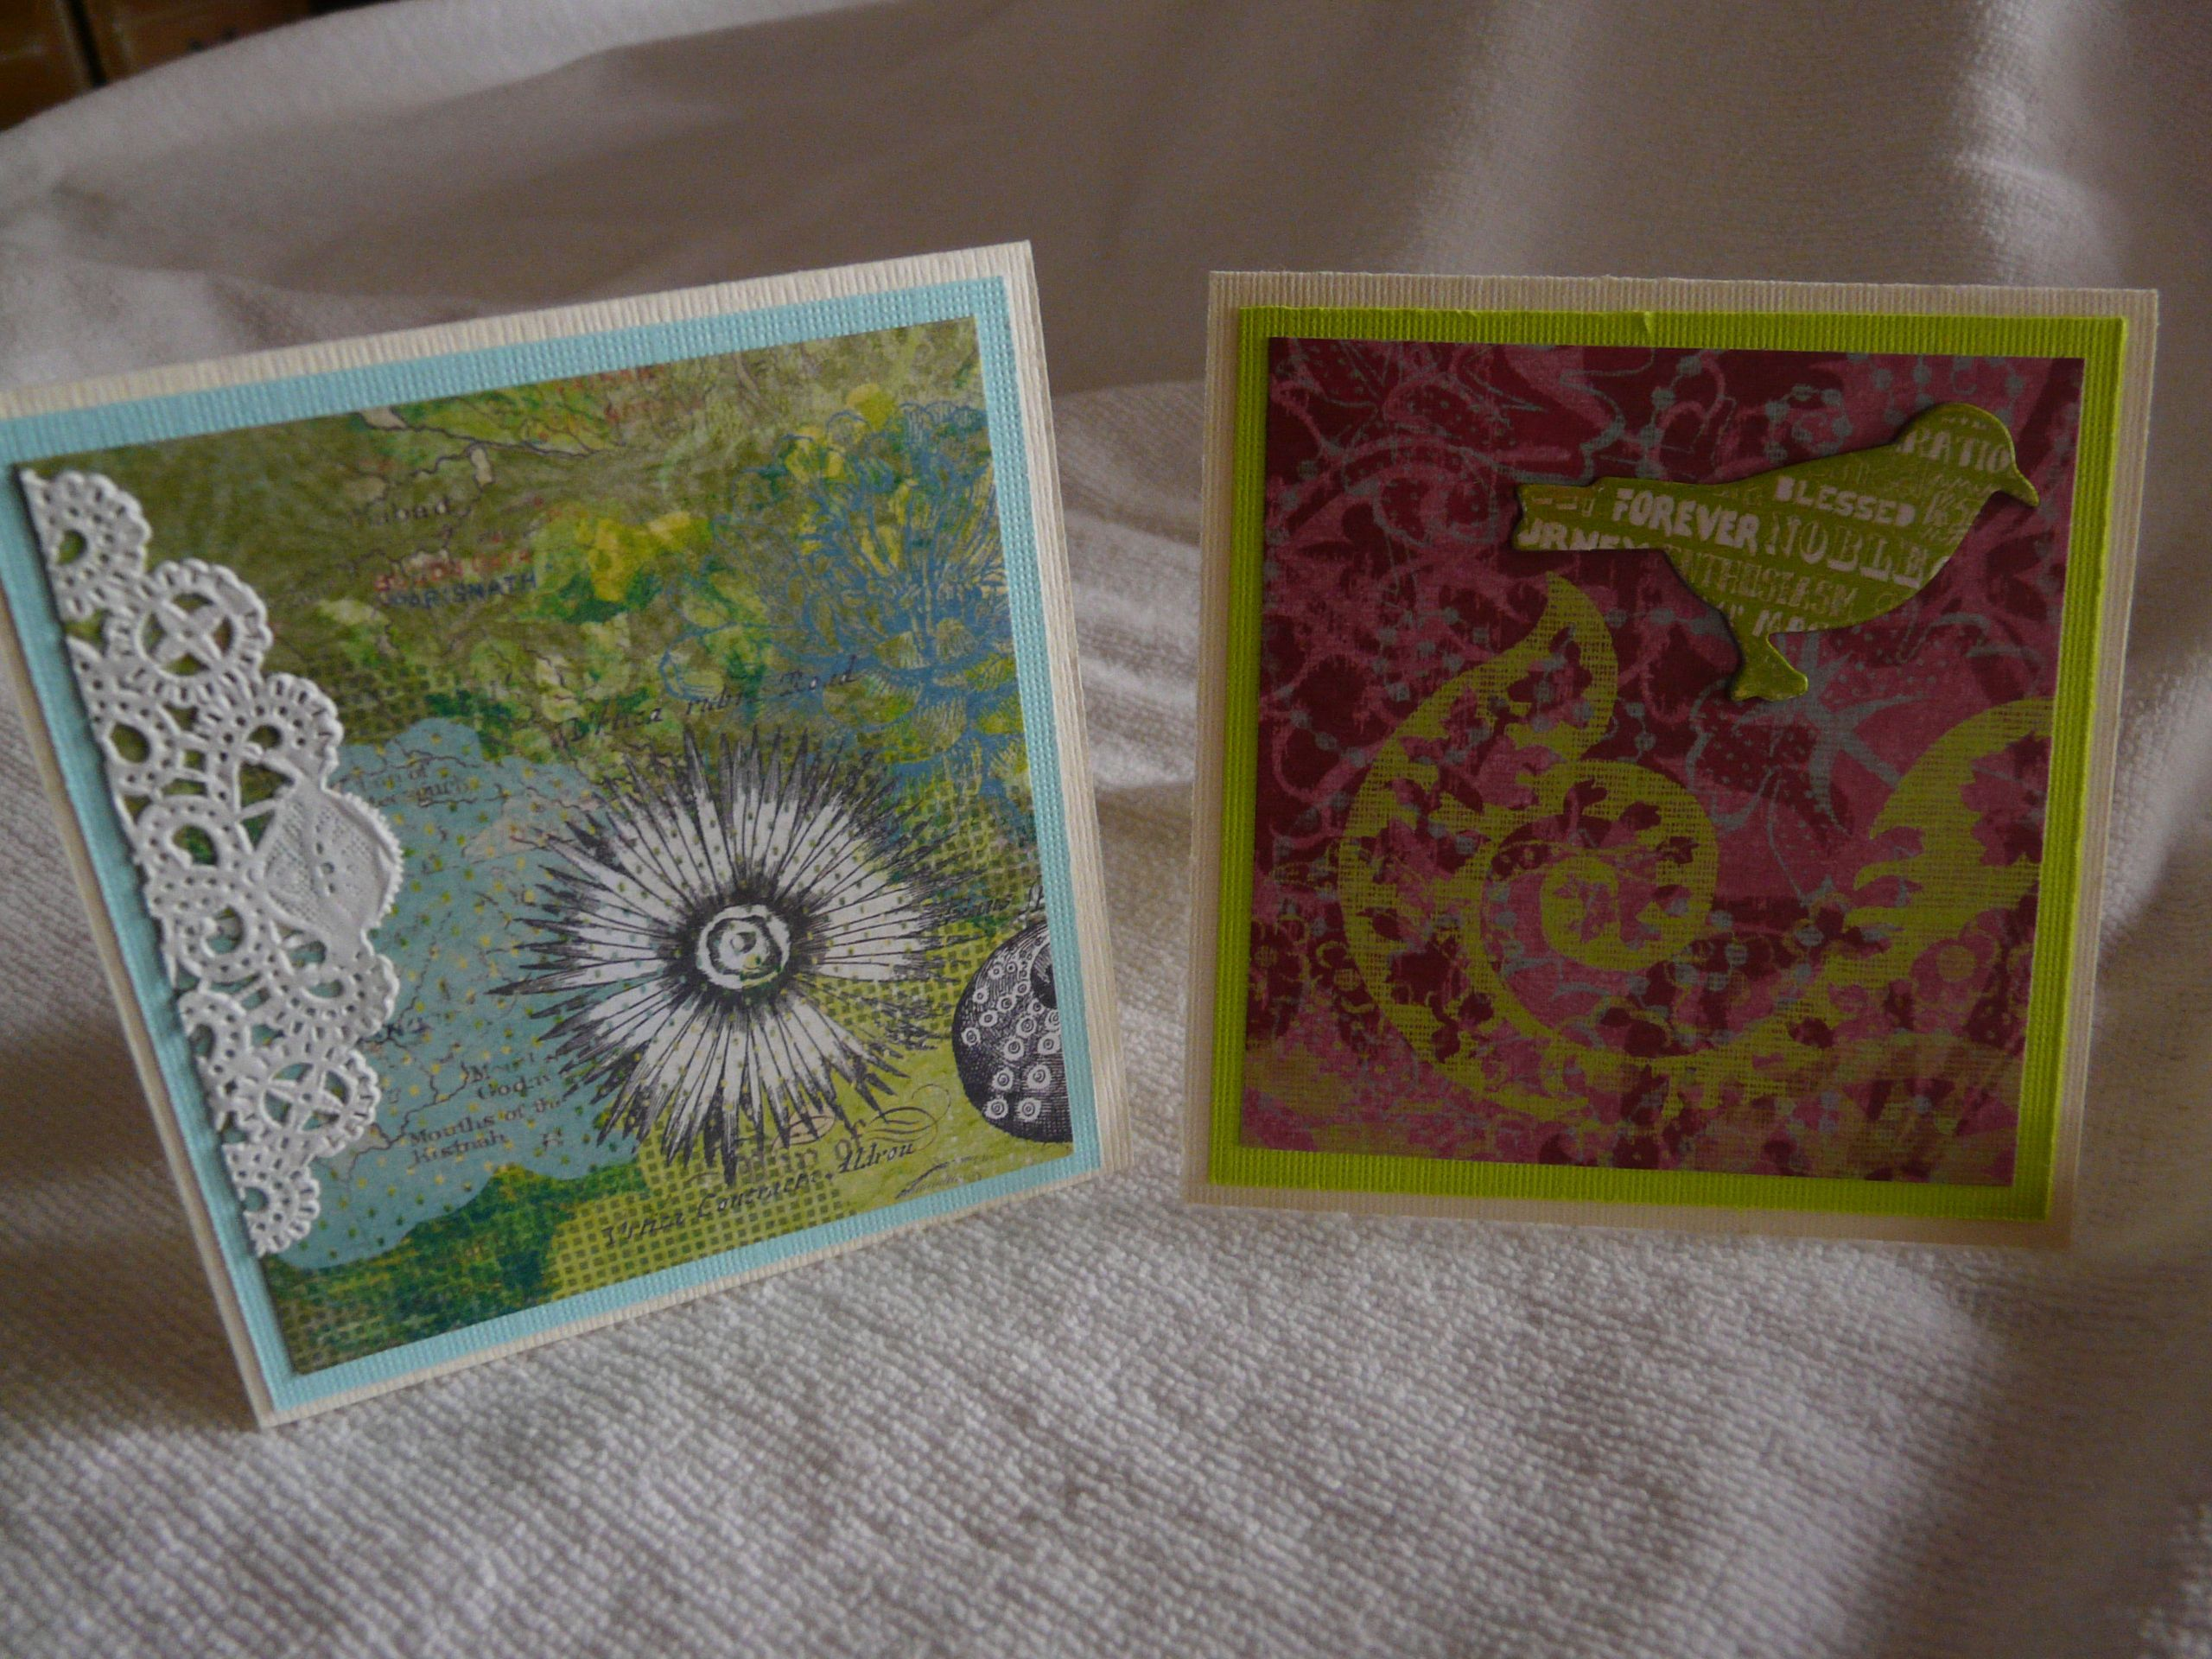 4 x 4 cards fitting in handmade box